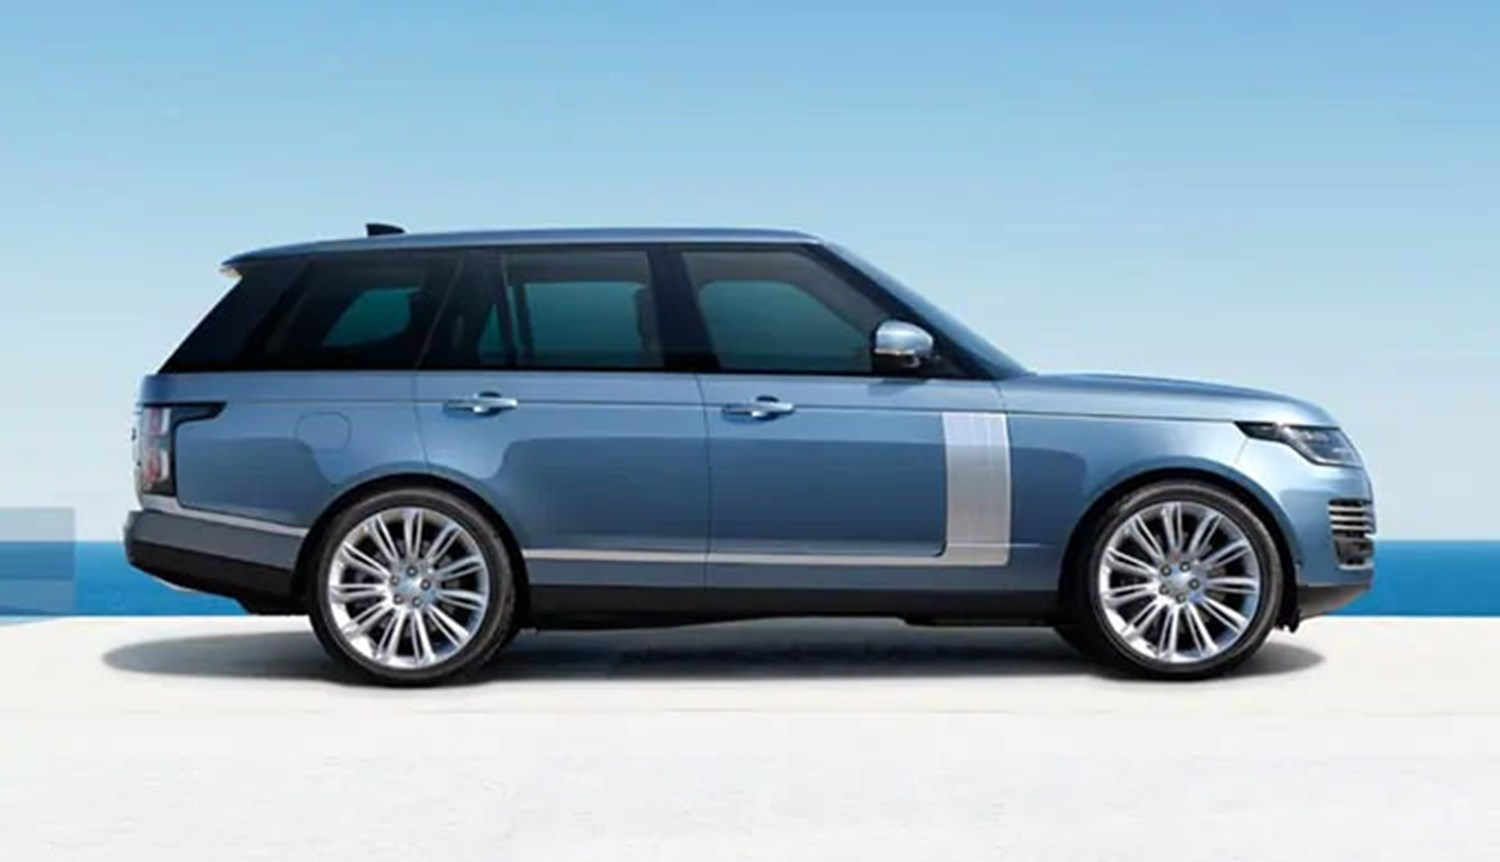 Range Rover Blue by poolside